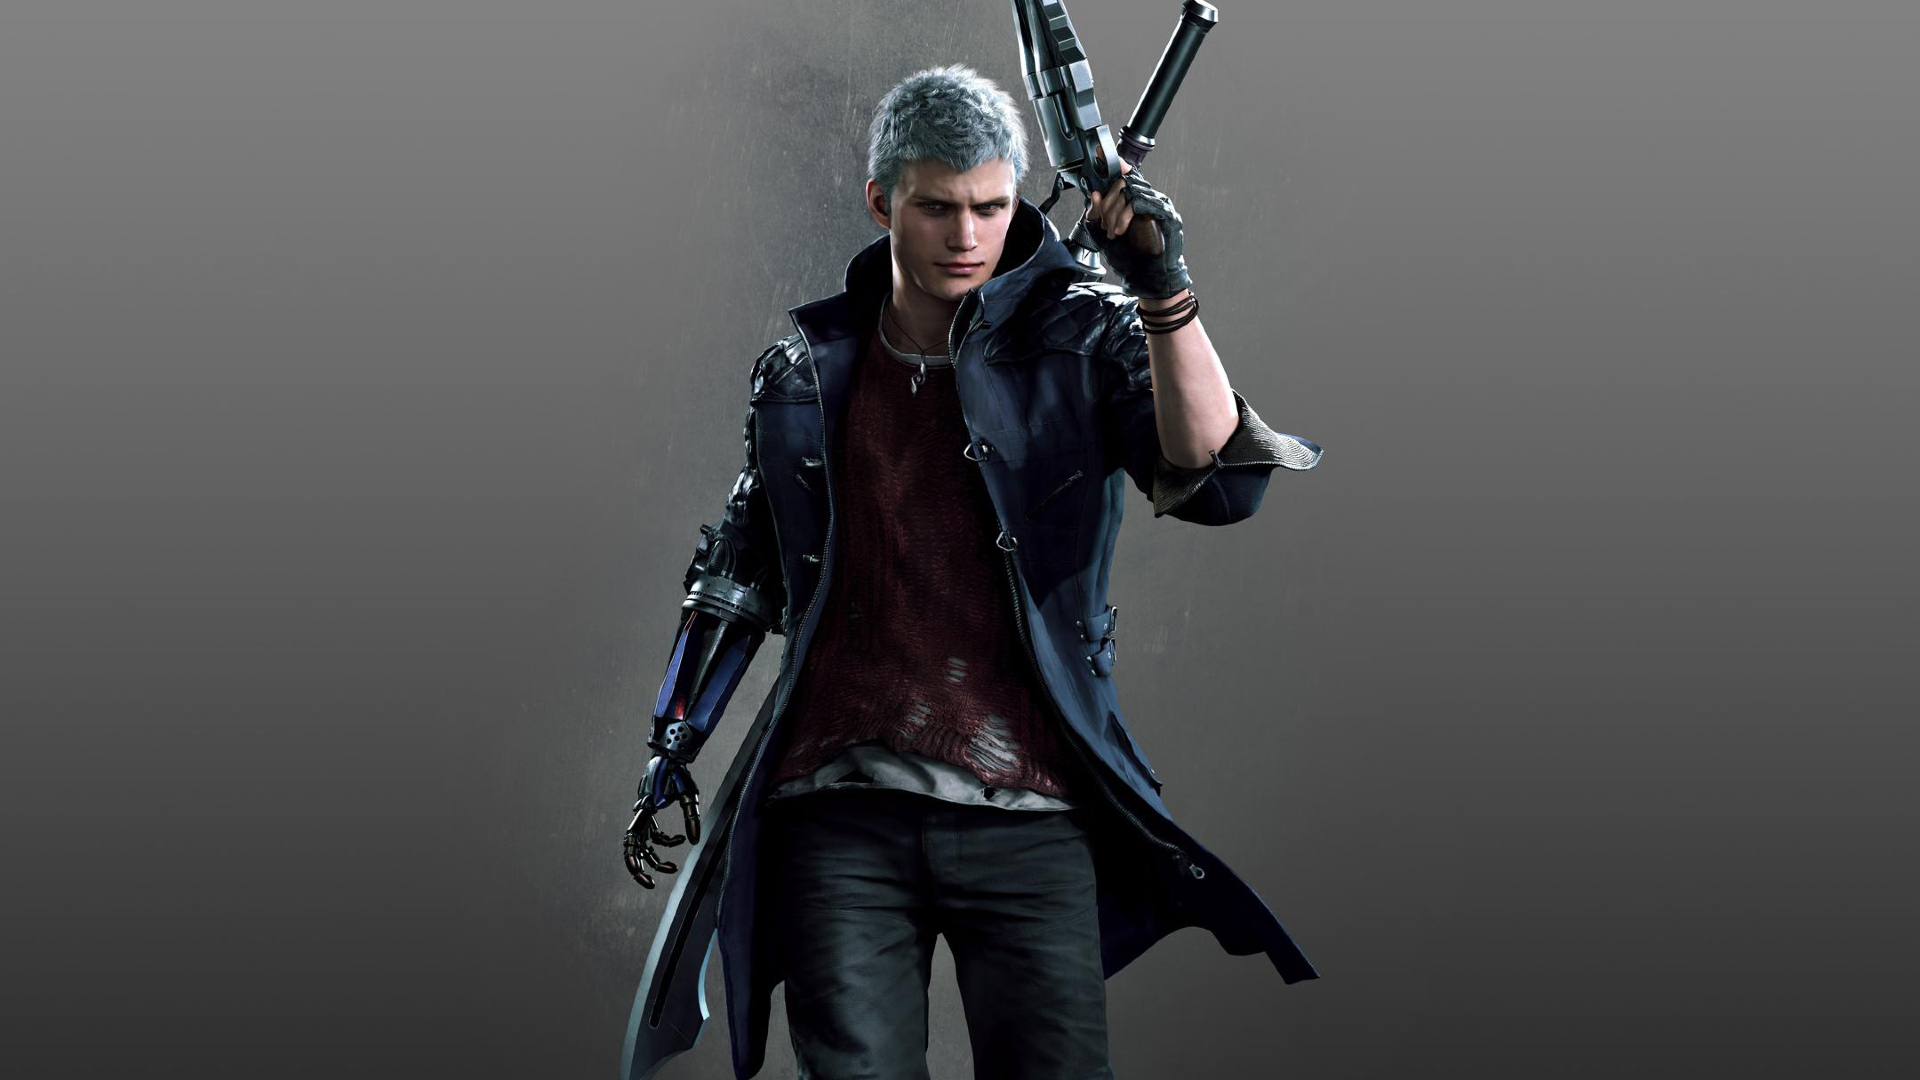 1920x1080 Devil May Cry 5 Video Game 1080P Laptop Full HD ...